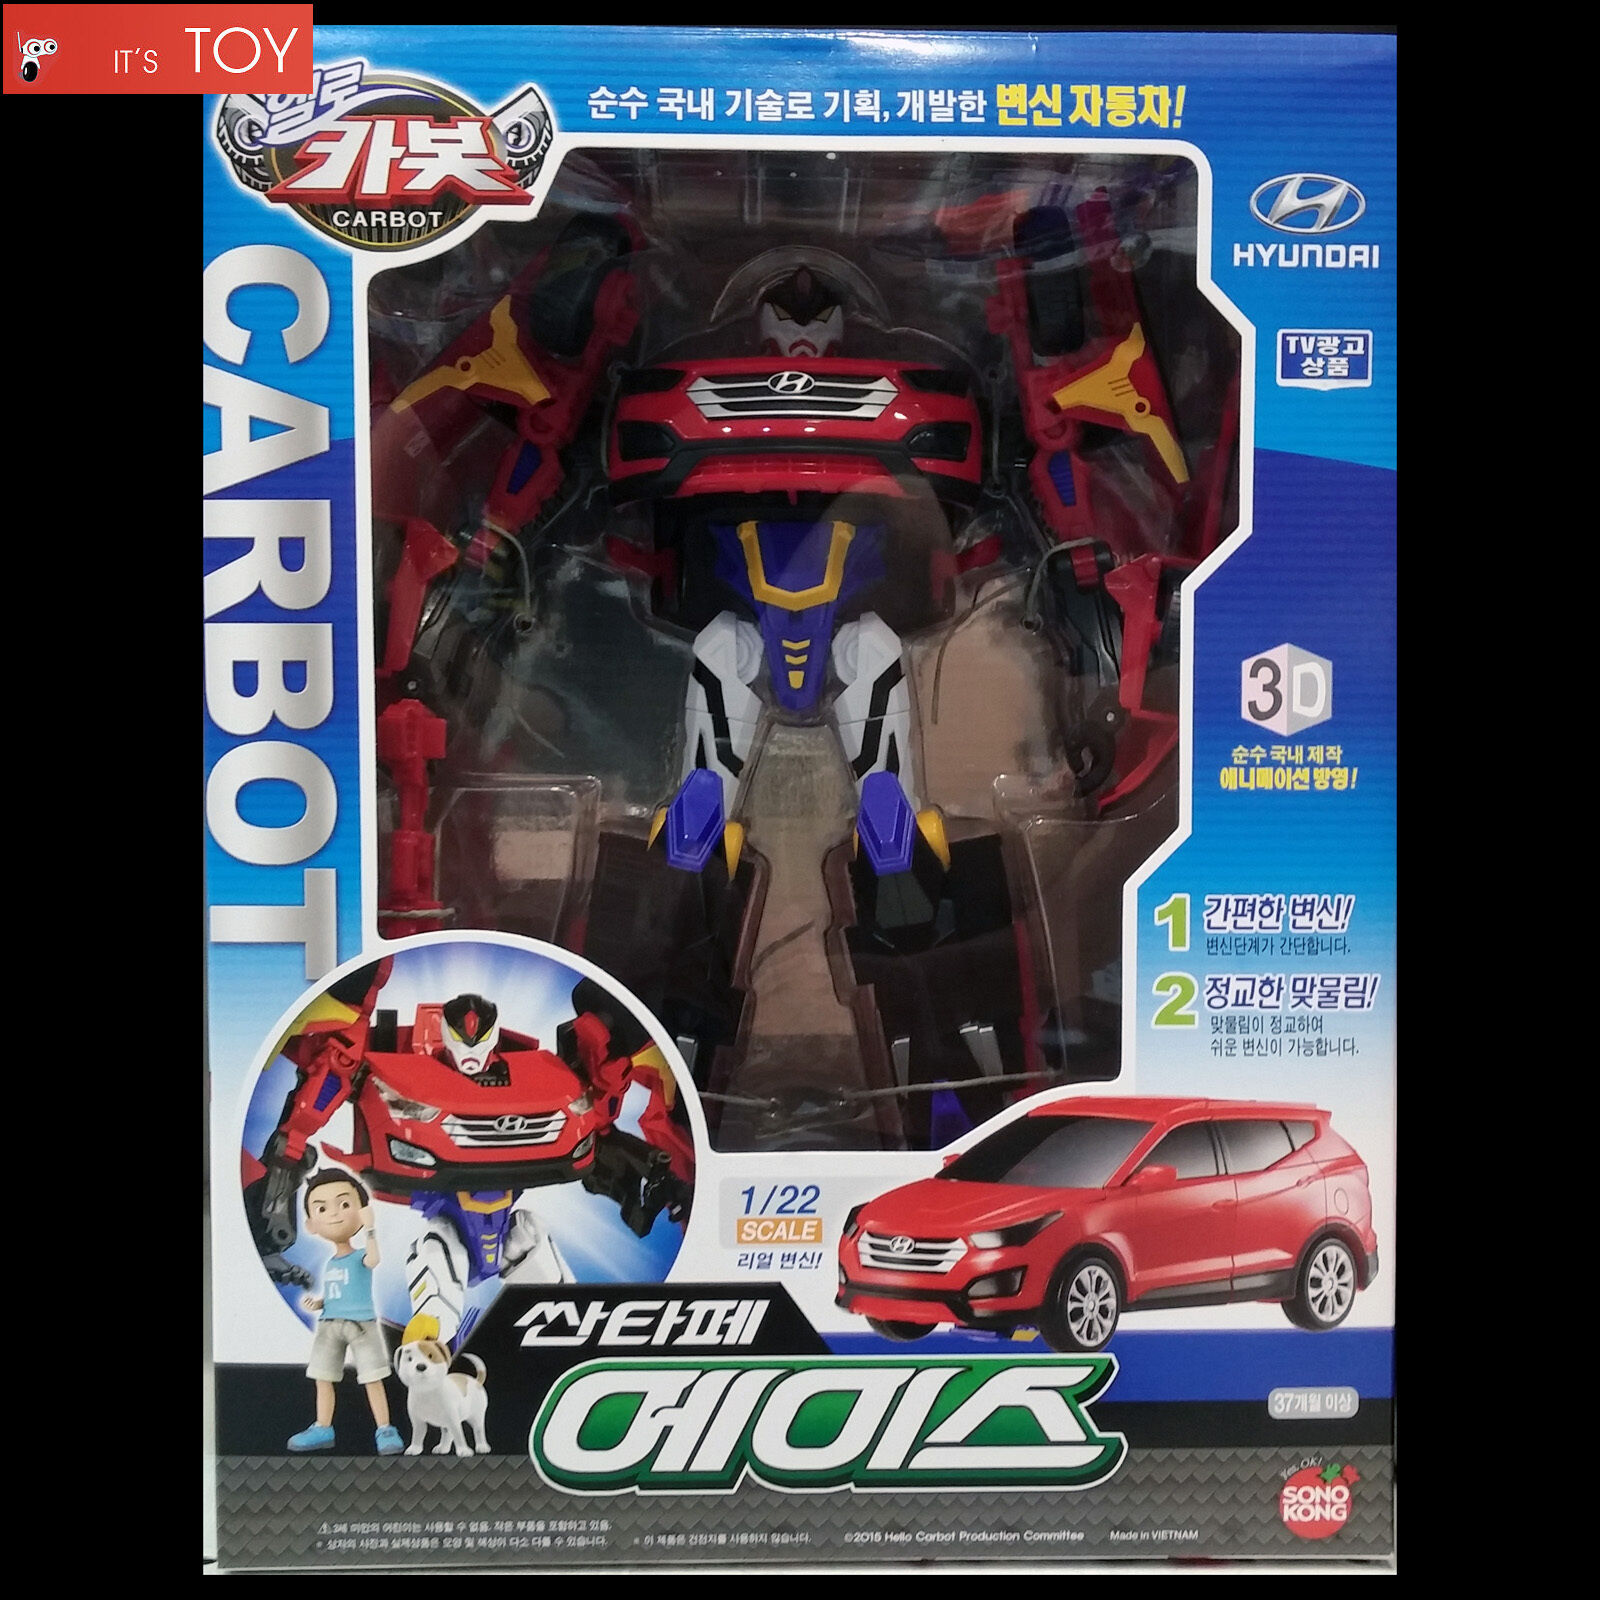 Hello Carbot Santafe Ace Red Transformer Transforming Robot Car Toy Hyundai 1 23